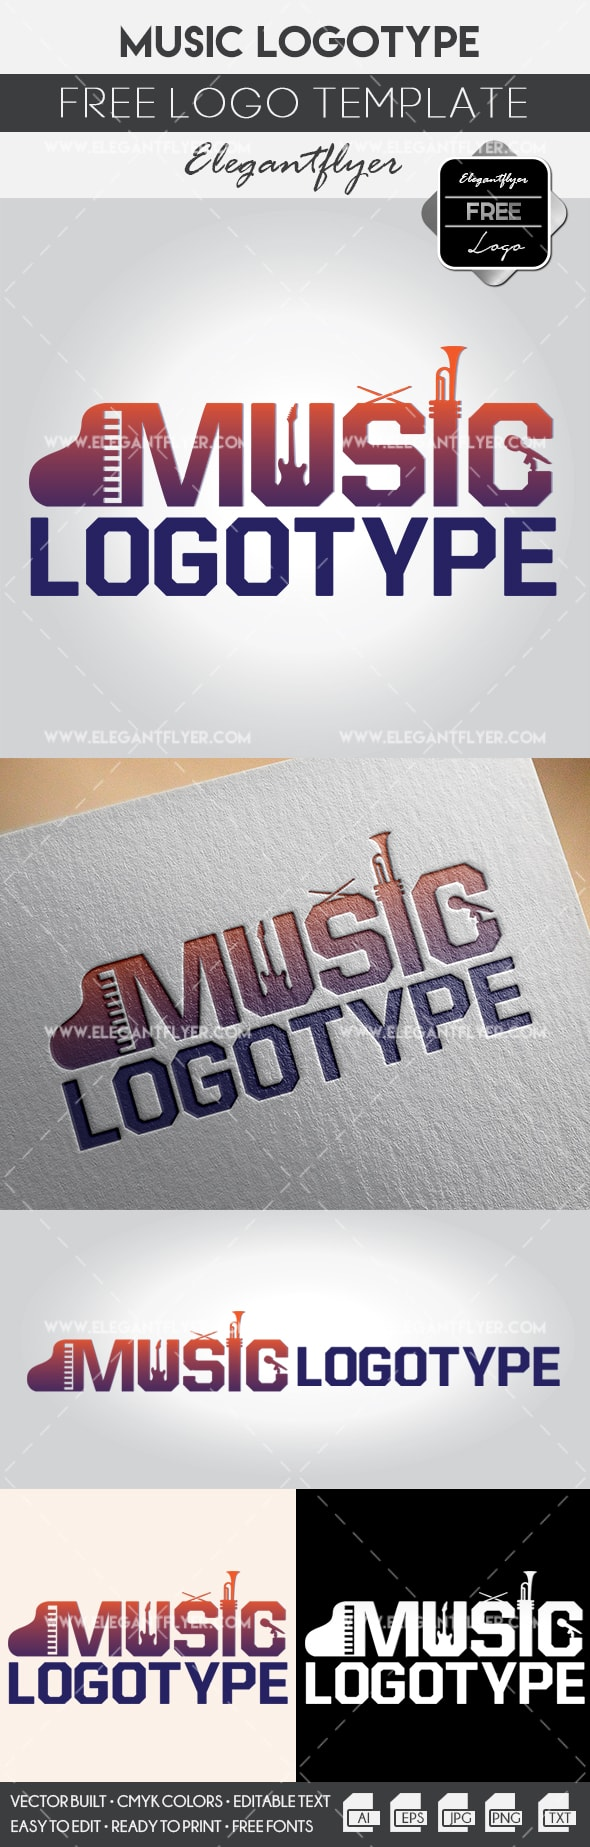 Free Logo for Music Company